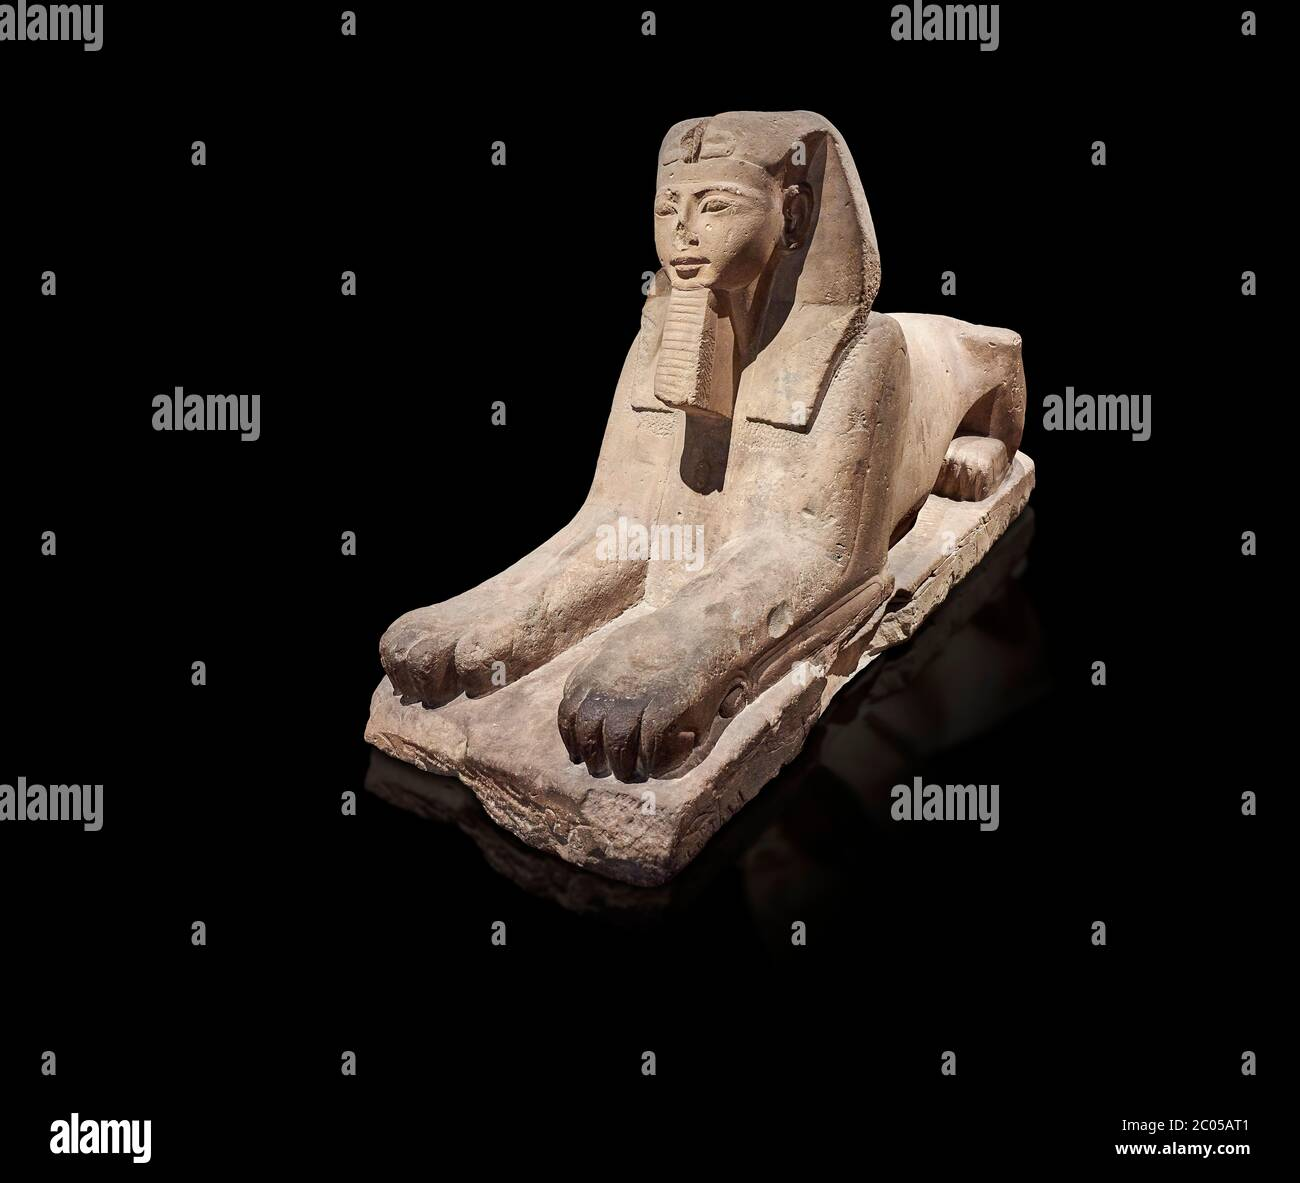 Ancient Egyptian Sphinx statue, sandstone, New Kingdom, early 19th Dynasty (1292-1250), Karnak, Temple of Amon. Egyptian Museum, Turin. black backgrou Stock Photo